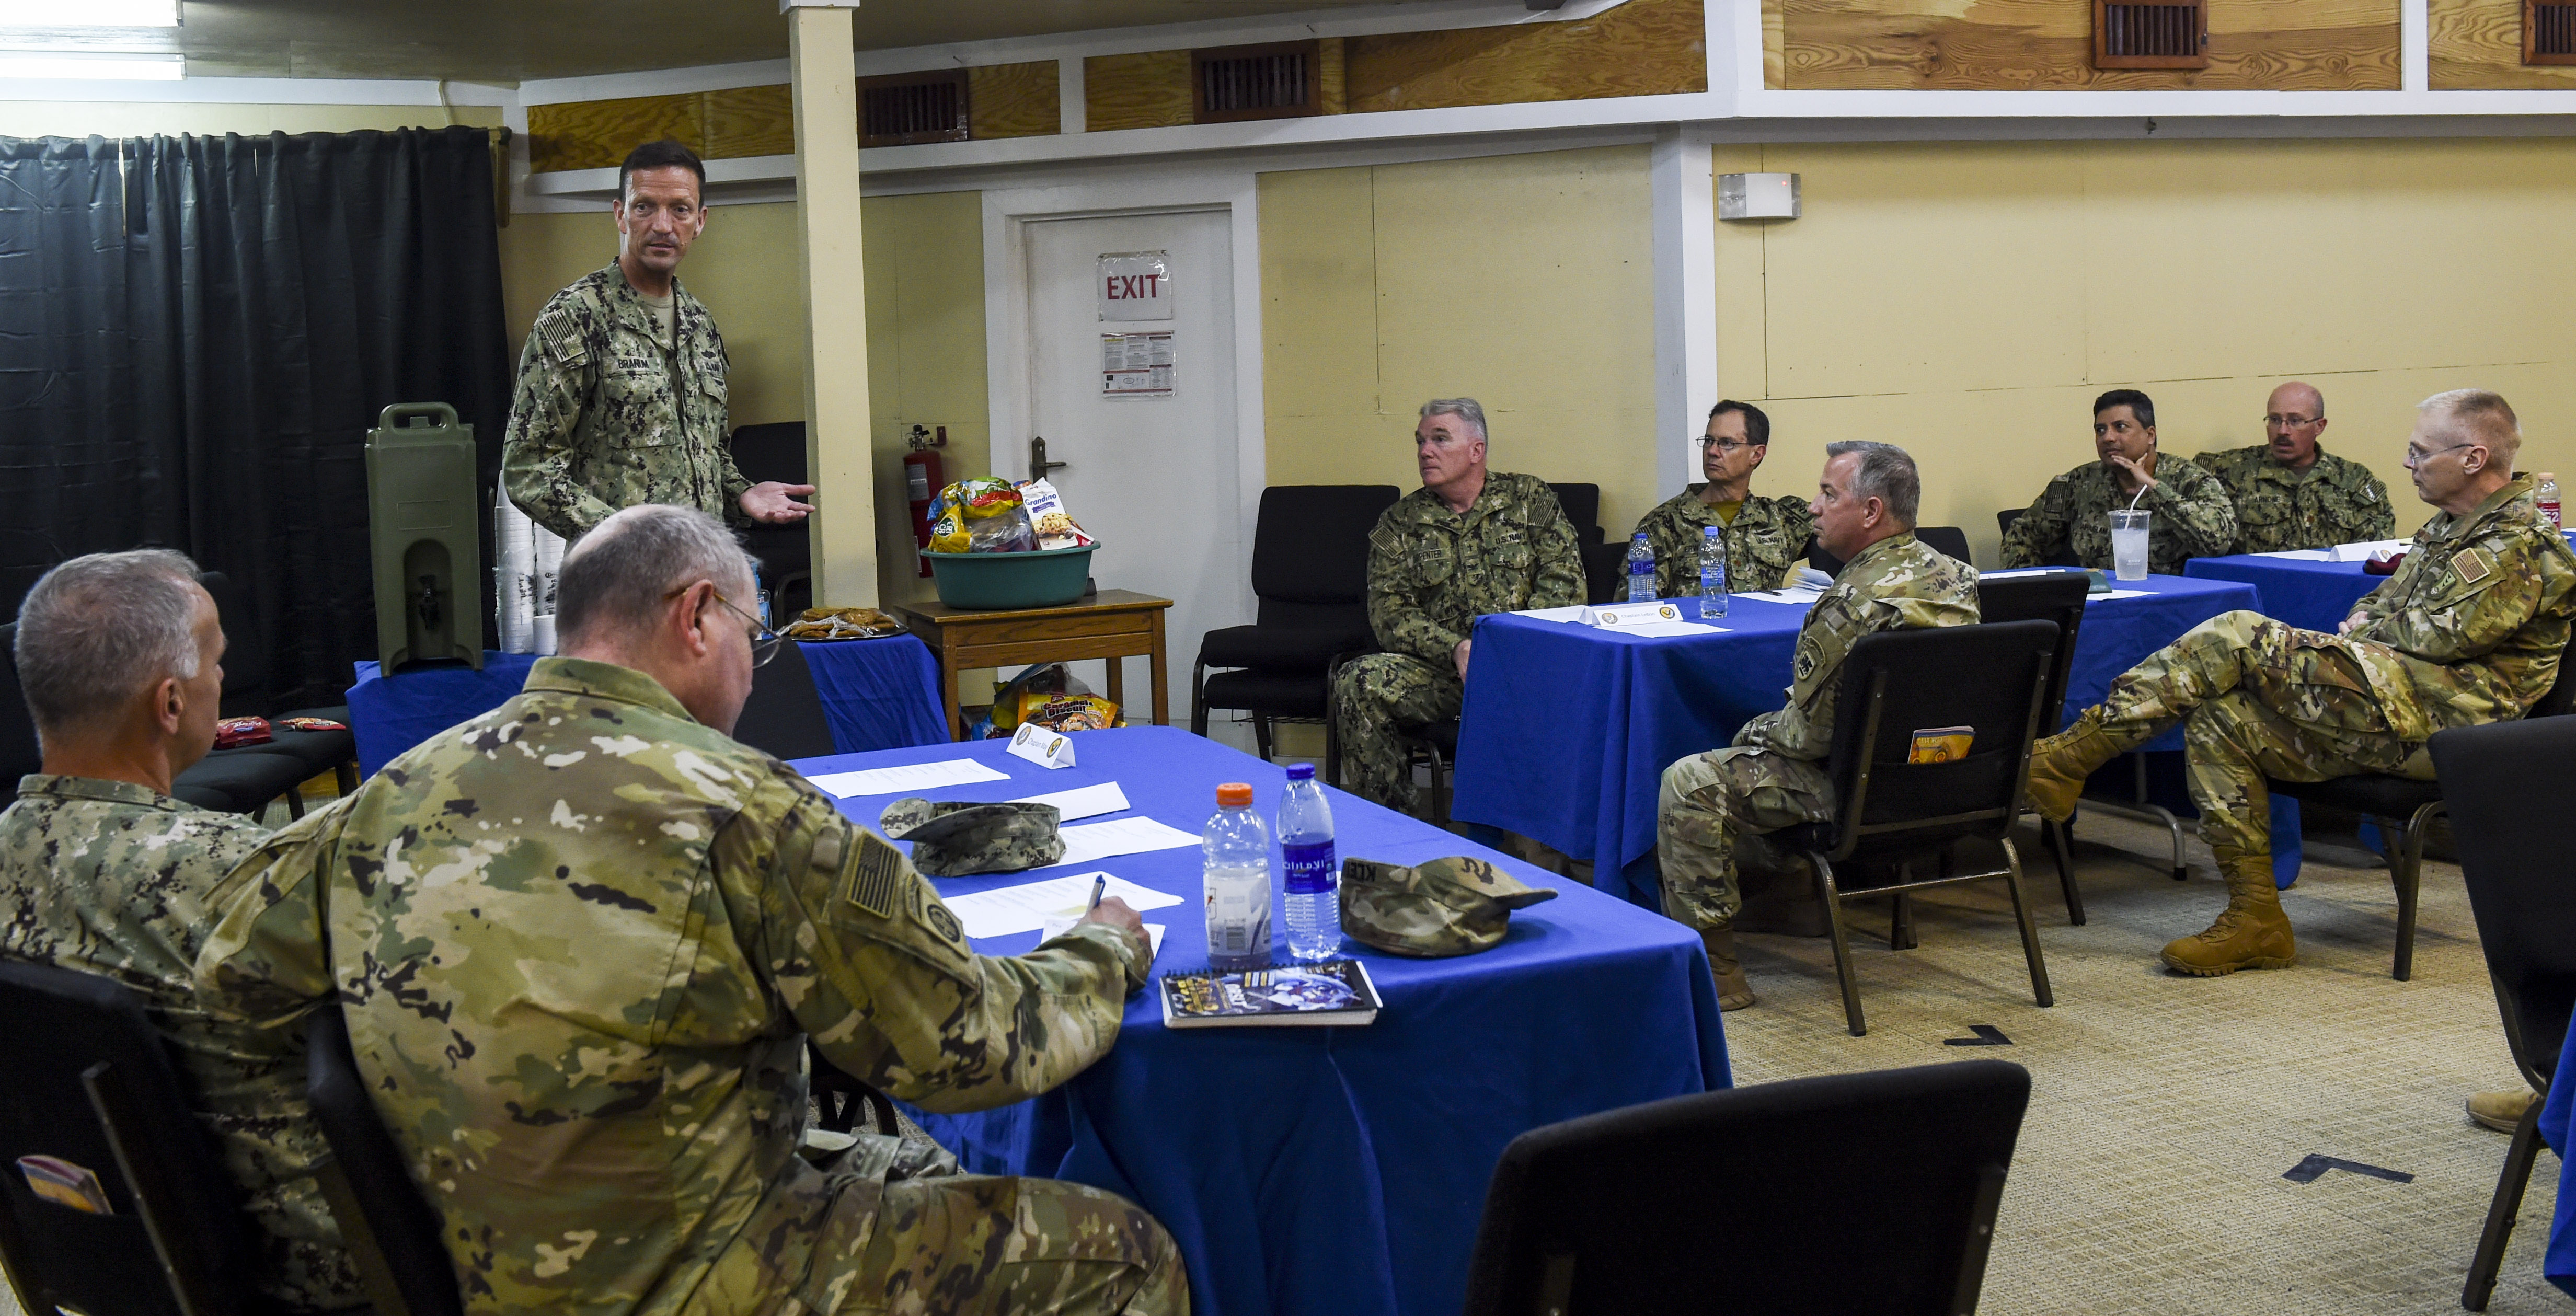 U.S. Navy Capt. Ian Branum, chief of staff for Combined Joint Task Force-Horn of Africa (CJTF-HOA), speaks with chaplains and chaplain assistants from U.S. Africa Command (AFRICOM), U.S. Army Africa (USARAF), and U.S. Air Forces Africa (AFAFRICA) during a religious affairs workshop at Camp Lemonnier, Djibouti, April 11, 2018. The CJTF-HOA Religious Affairs team hosted the workshop to synchronize and plan the support they provide for service members throughout the combined joint operating area. (U.S. Air Force photo by Staff Sgt. Timothy Moore)